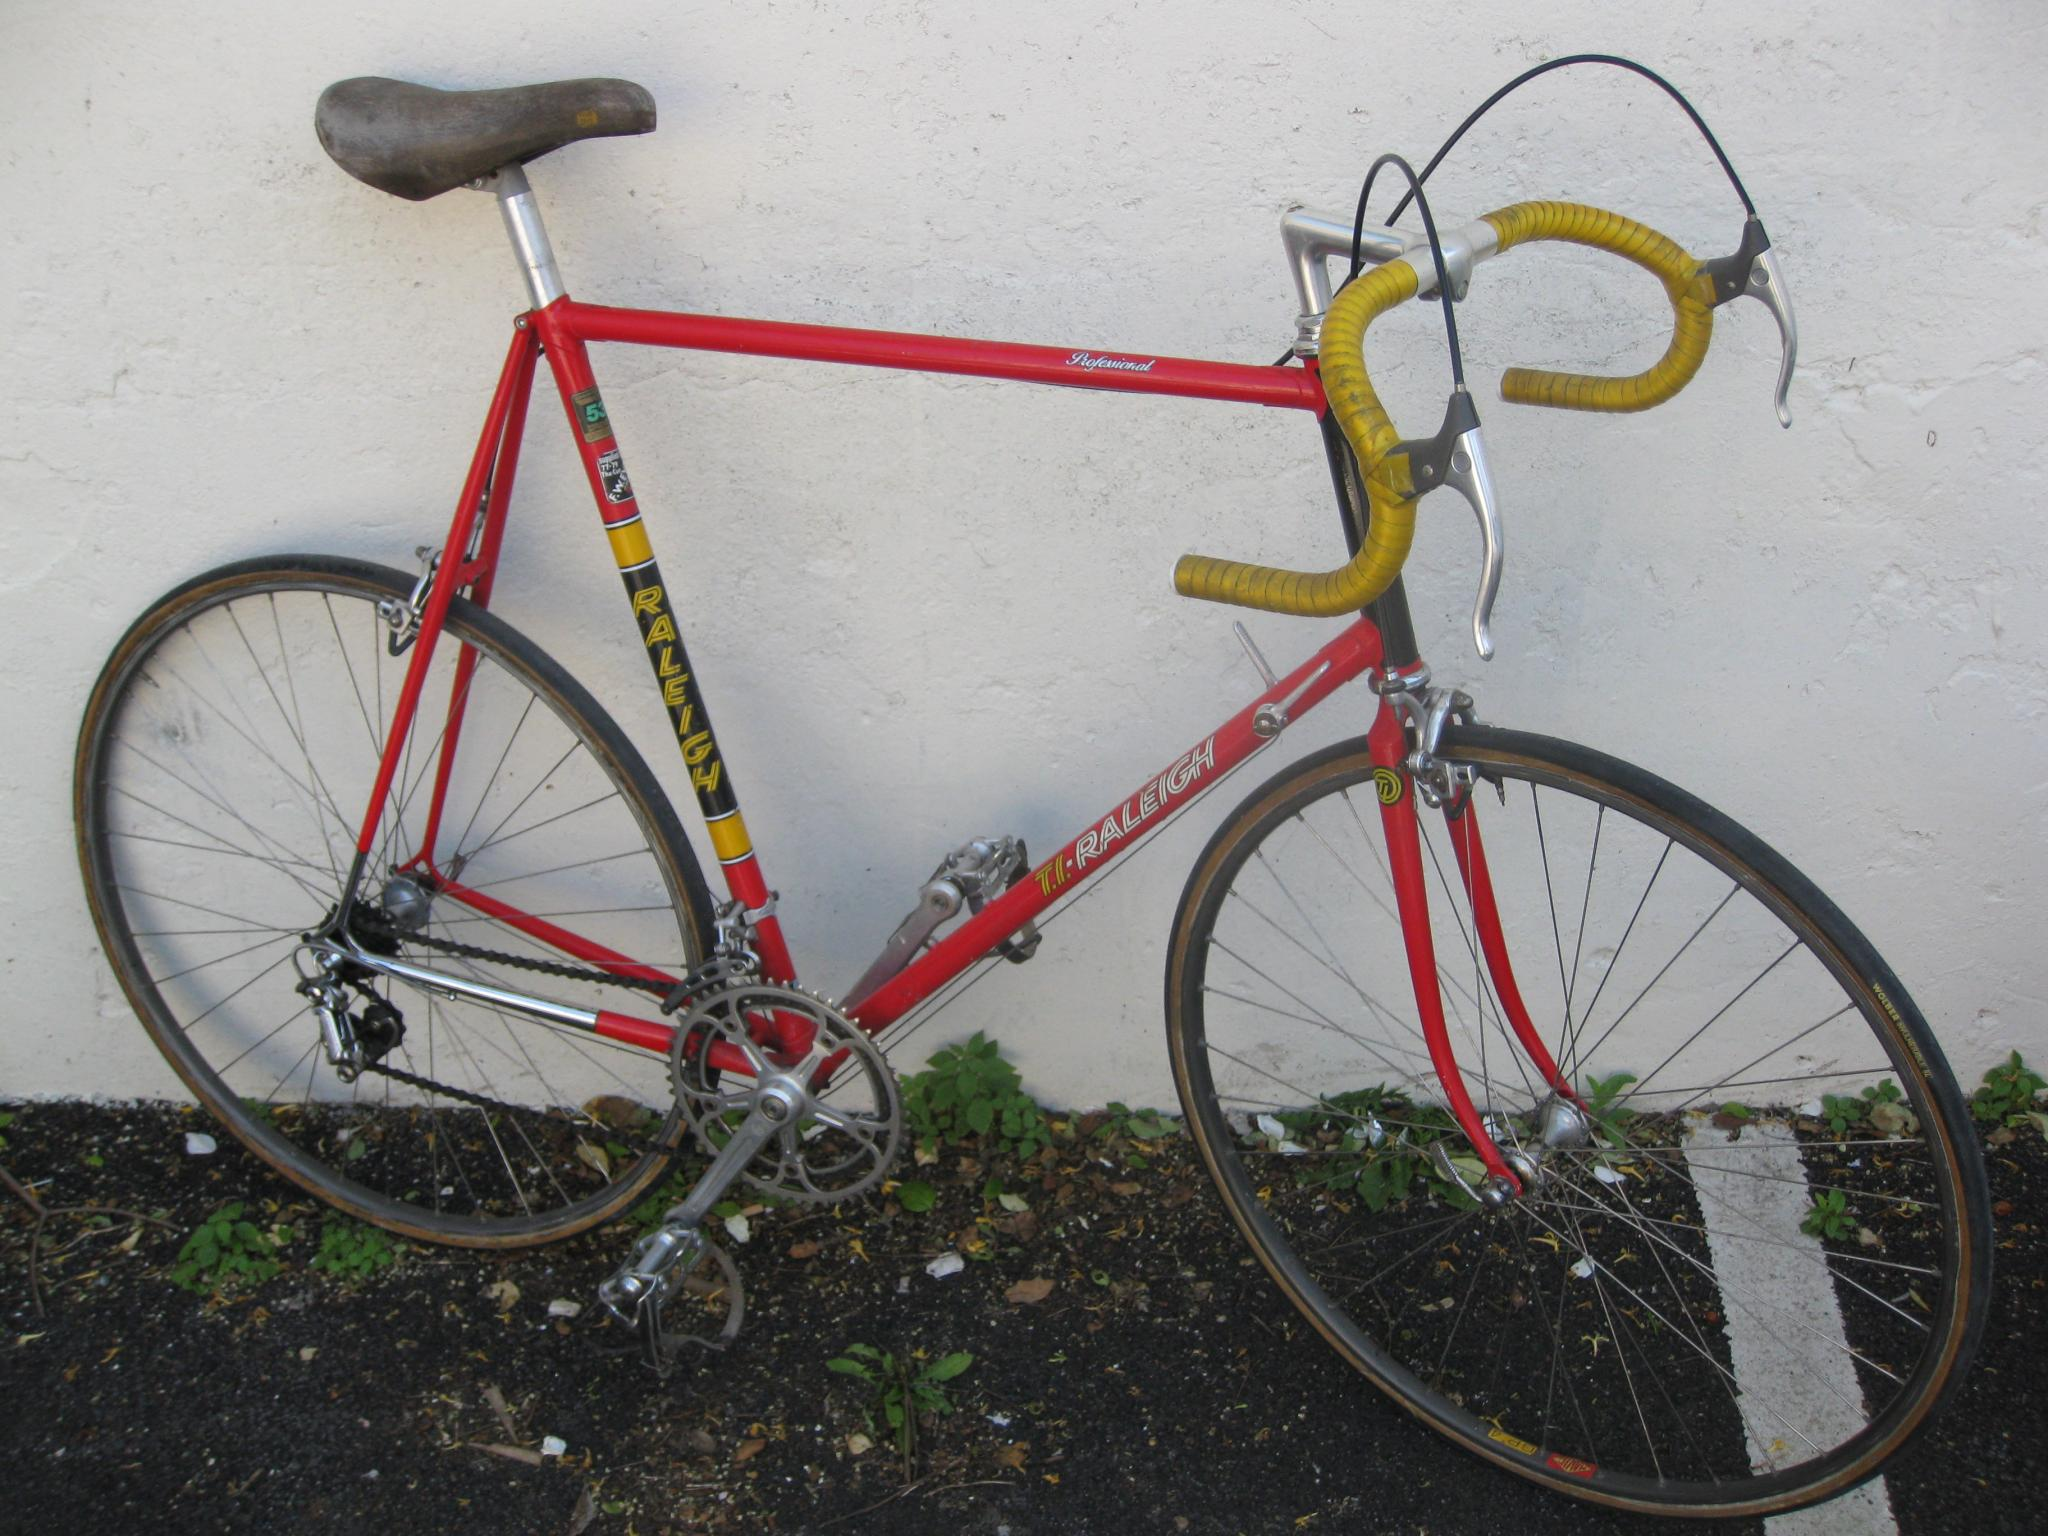 For Sale Vintage Raleigh Ti Team Professional Bike 64c 531c